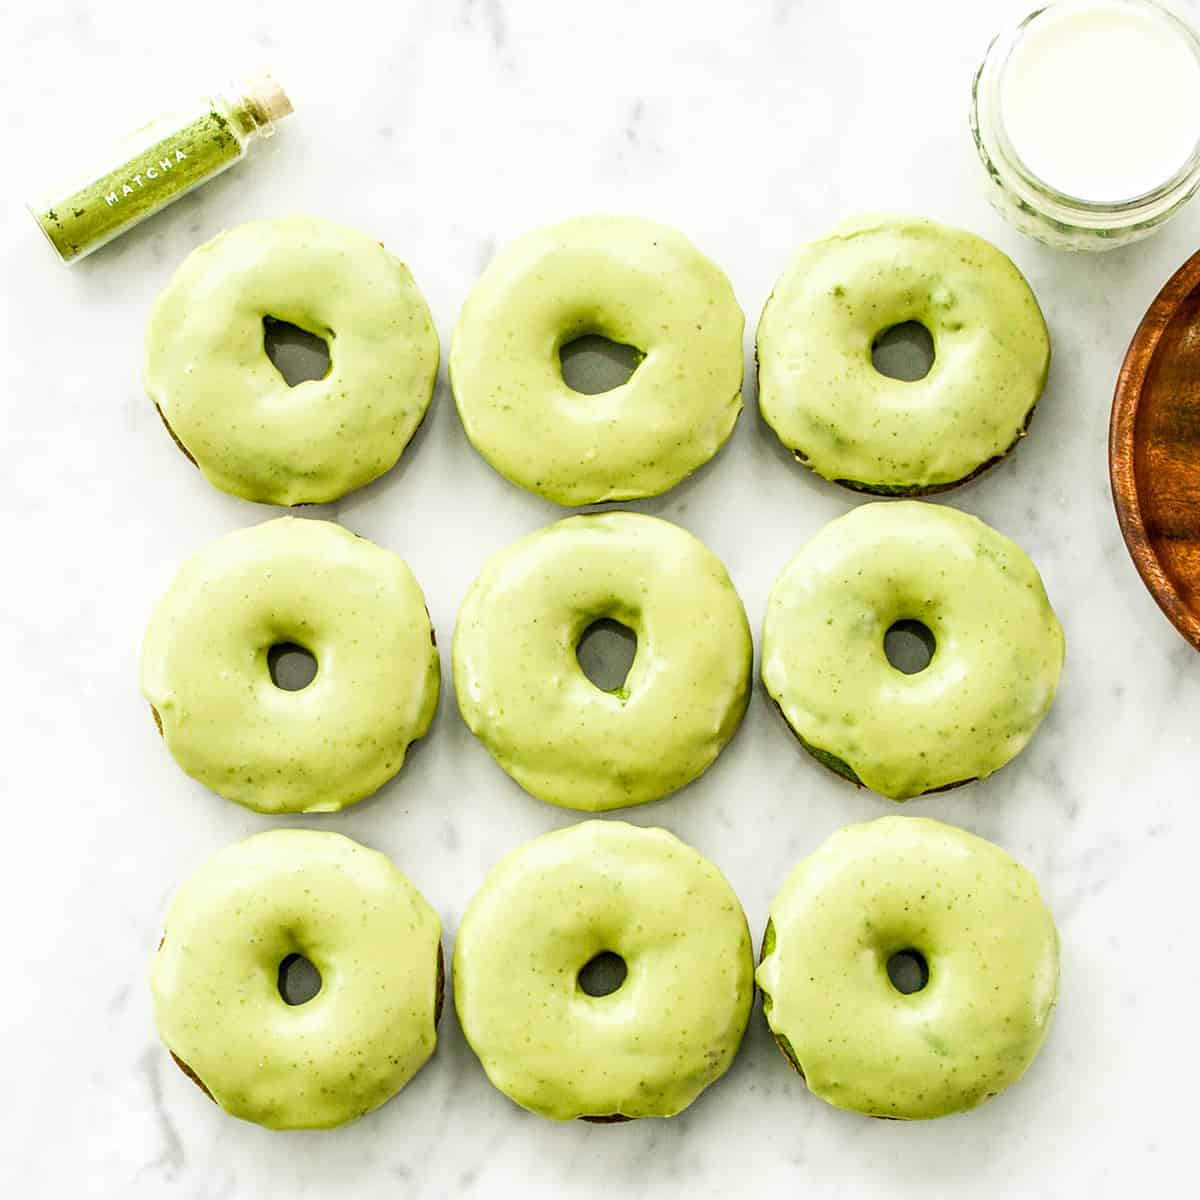 Overhead view of 9 Paleo Spinach Donuts arranged in 3 rows of 3